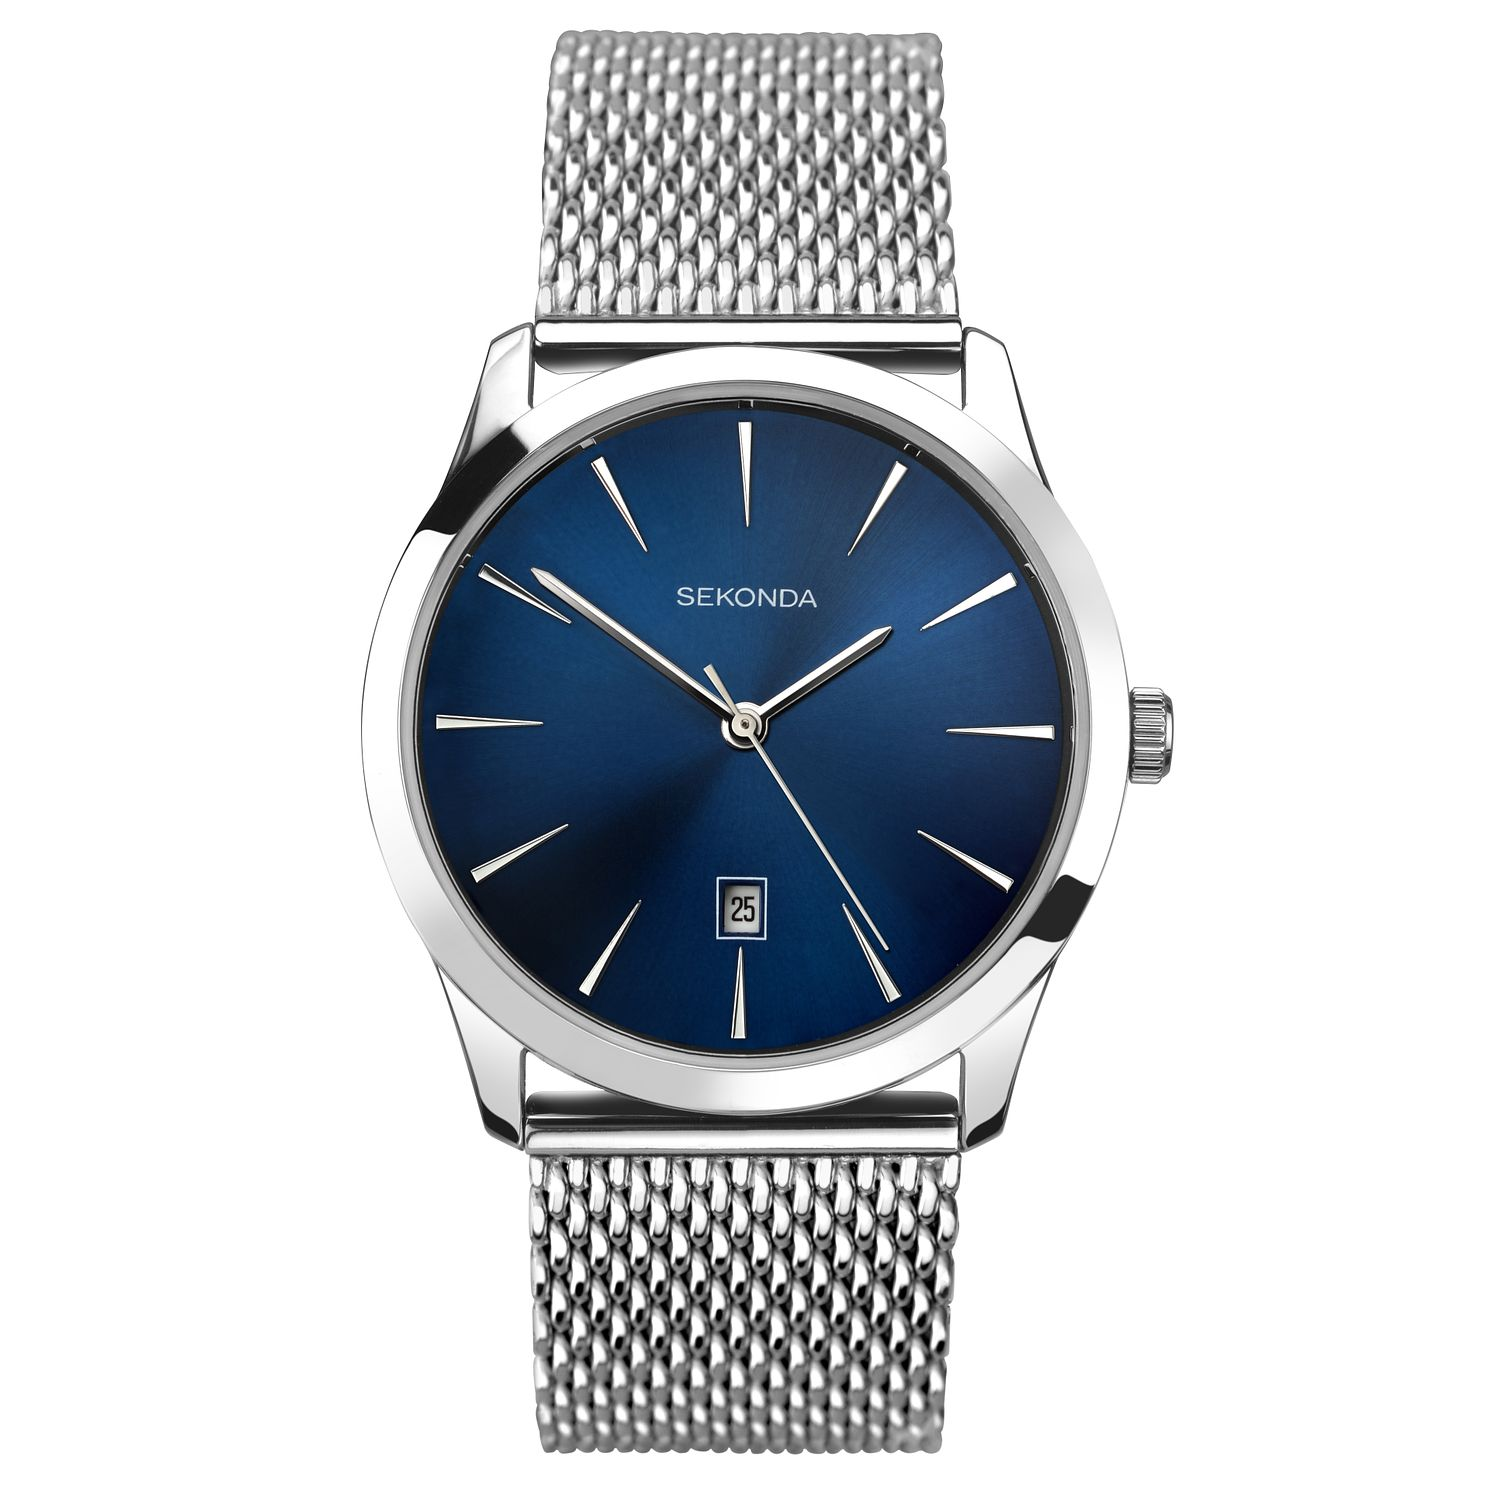 Sekonda Men's Stainless Steel Mesh Bracelet Watch - Product number 6231446